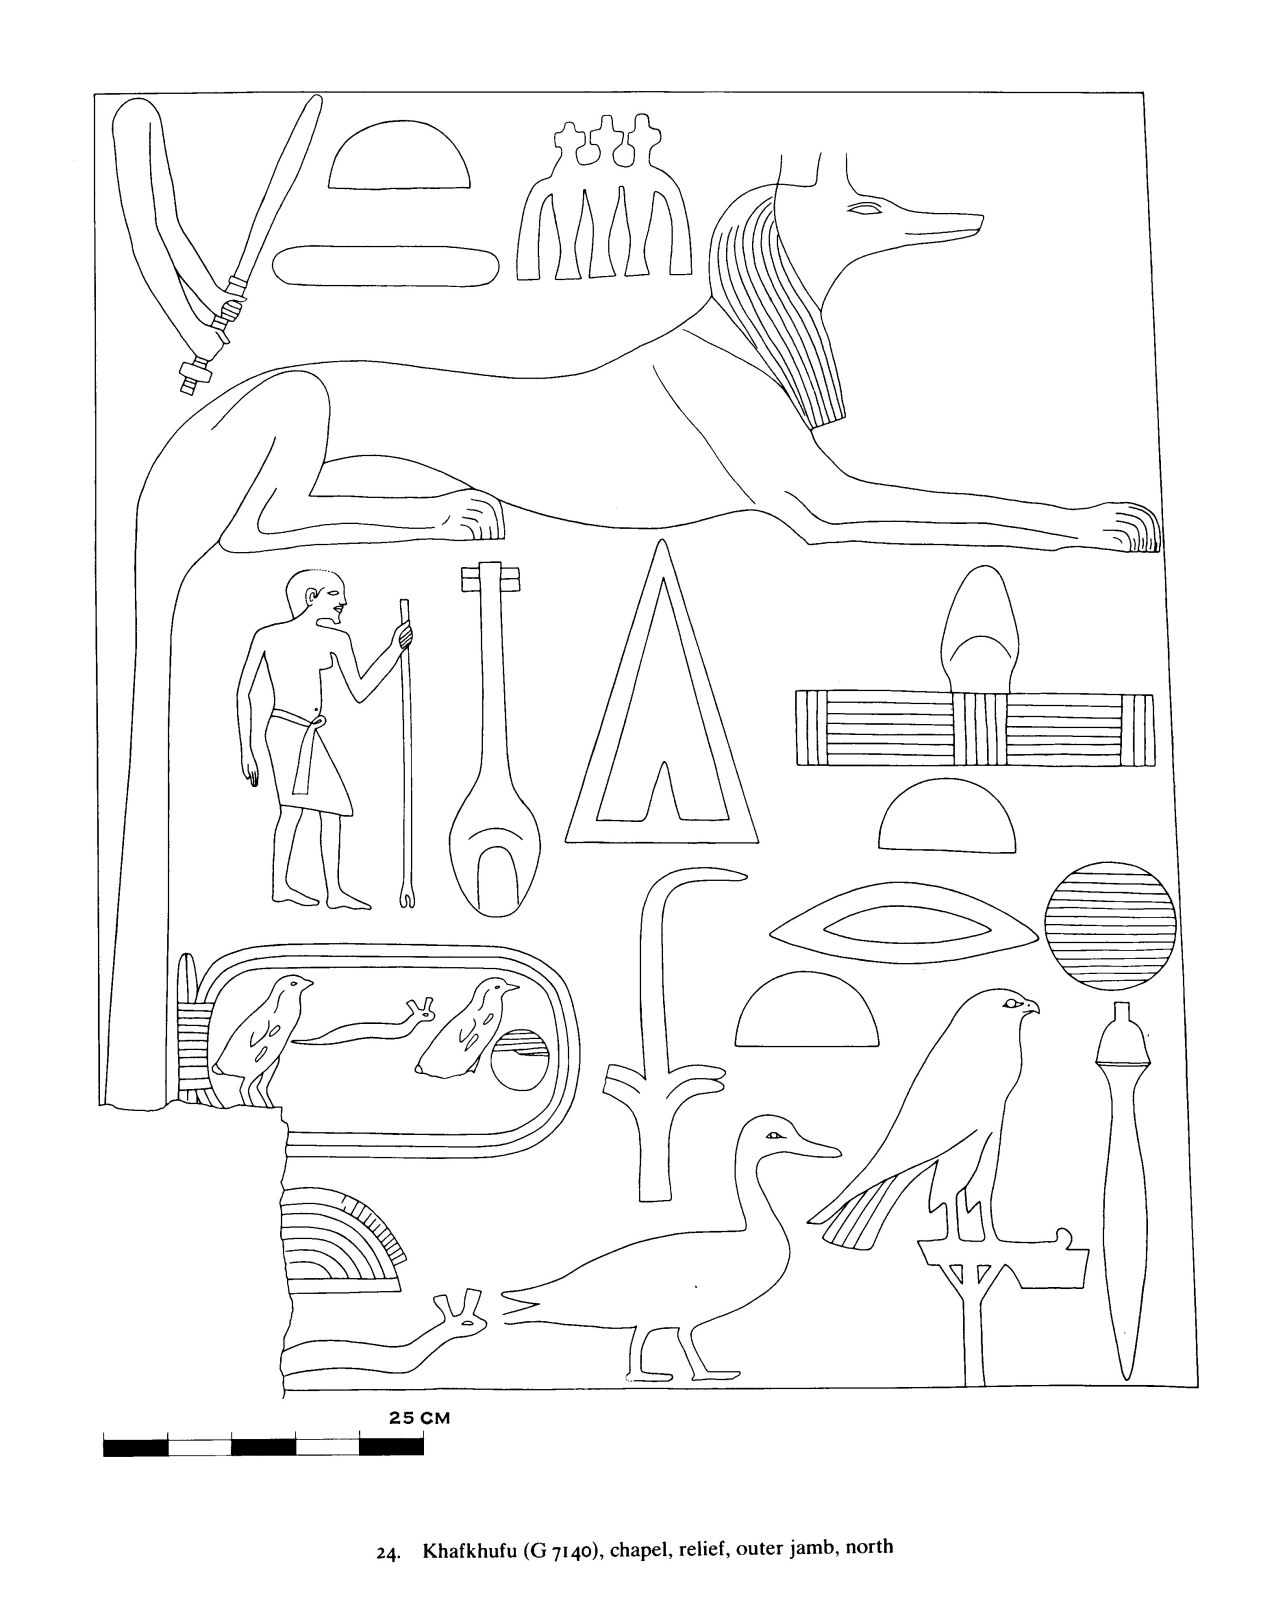 Drawings: G 7140: relief from chapel, outer jamb